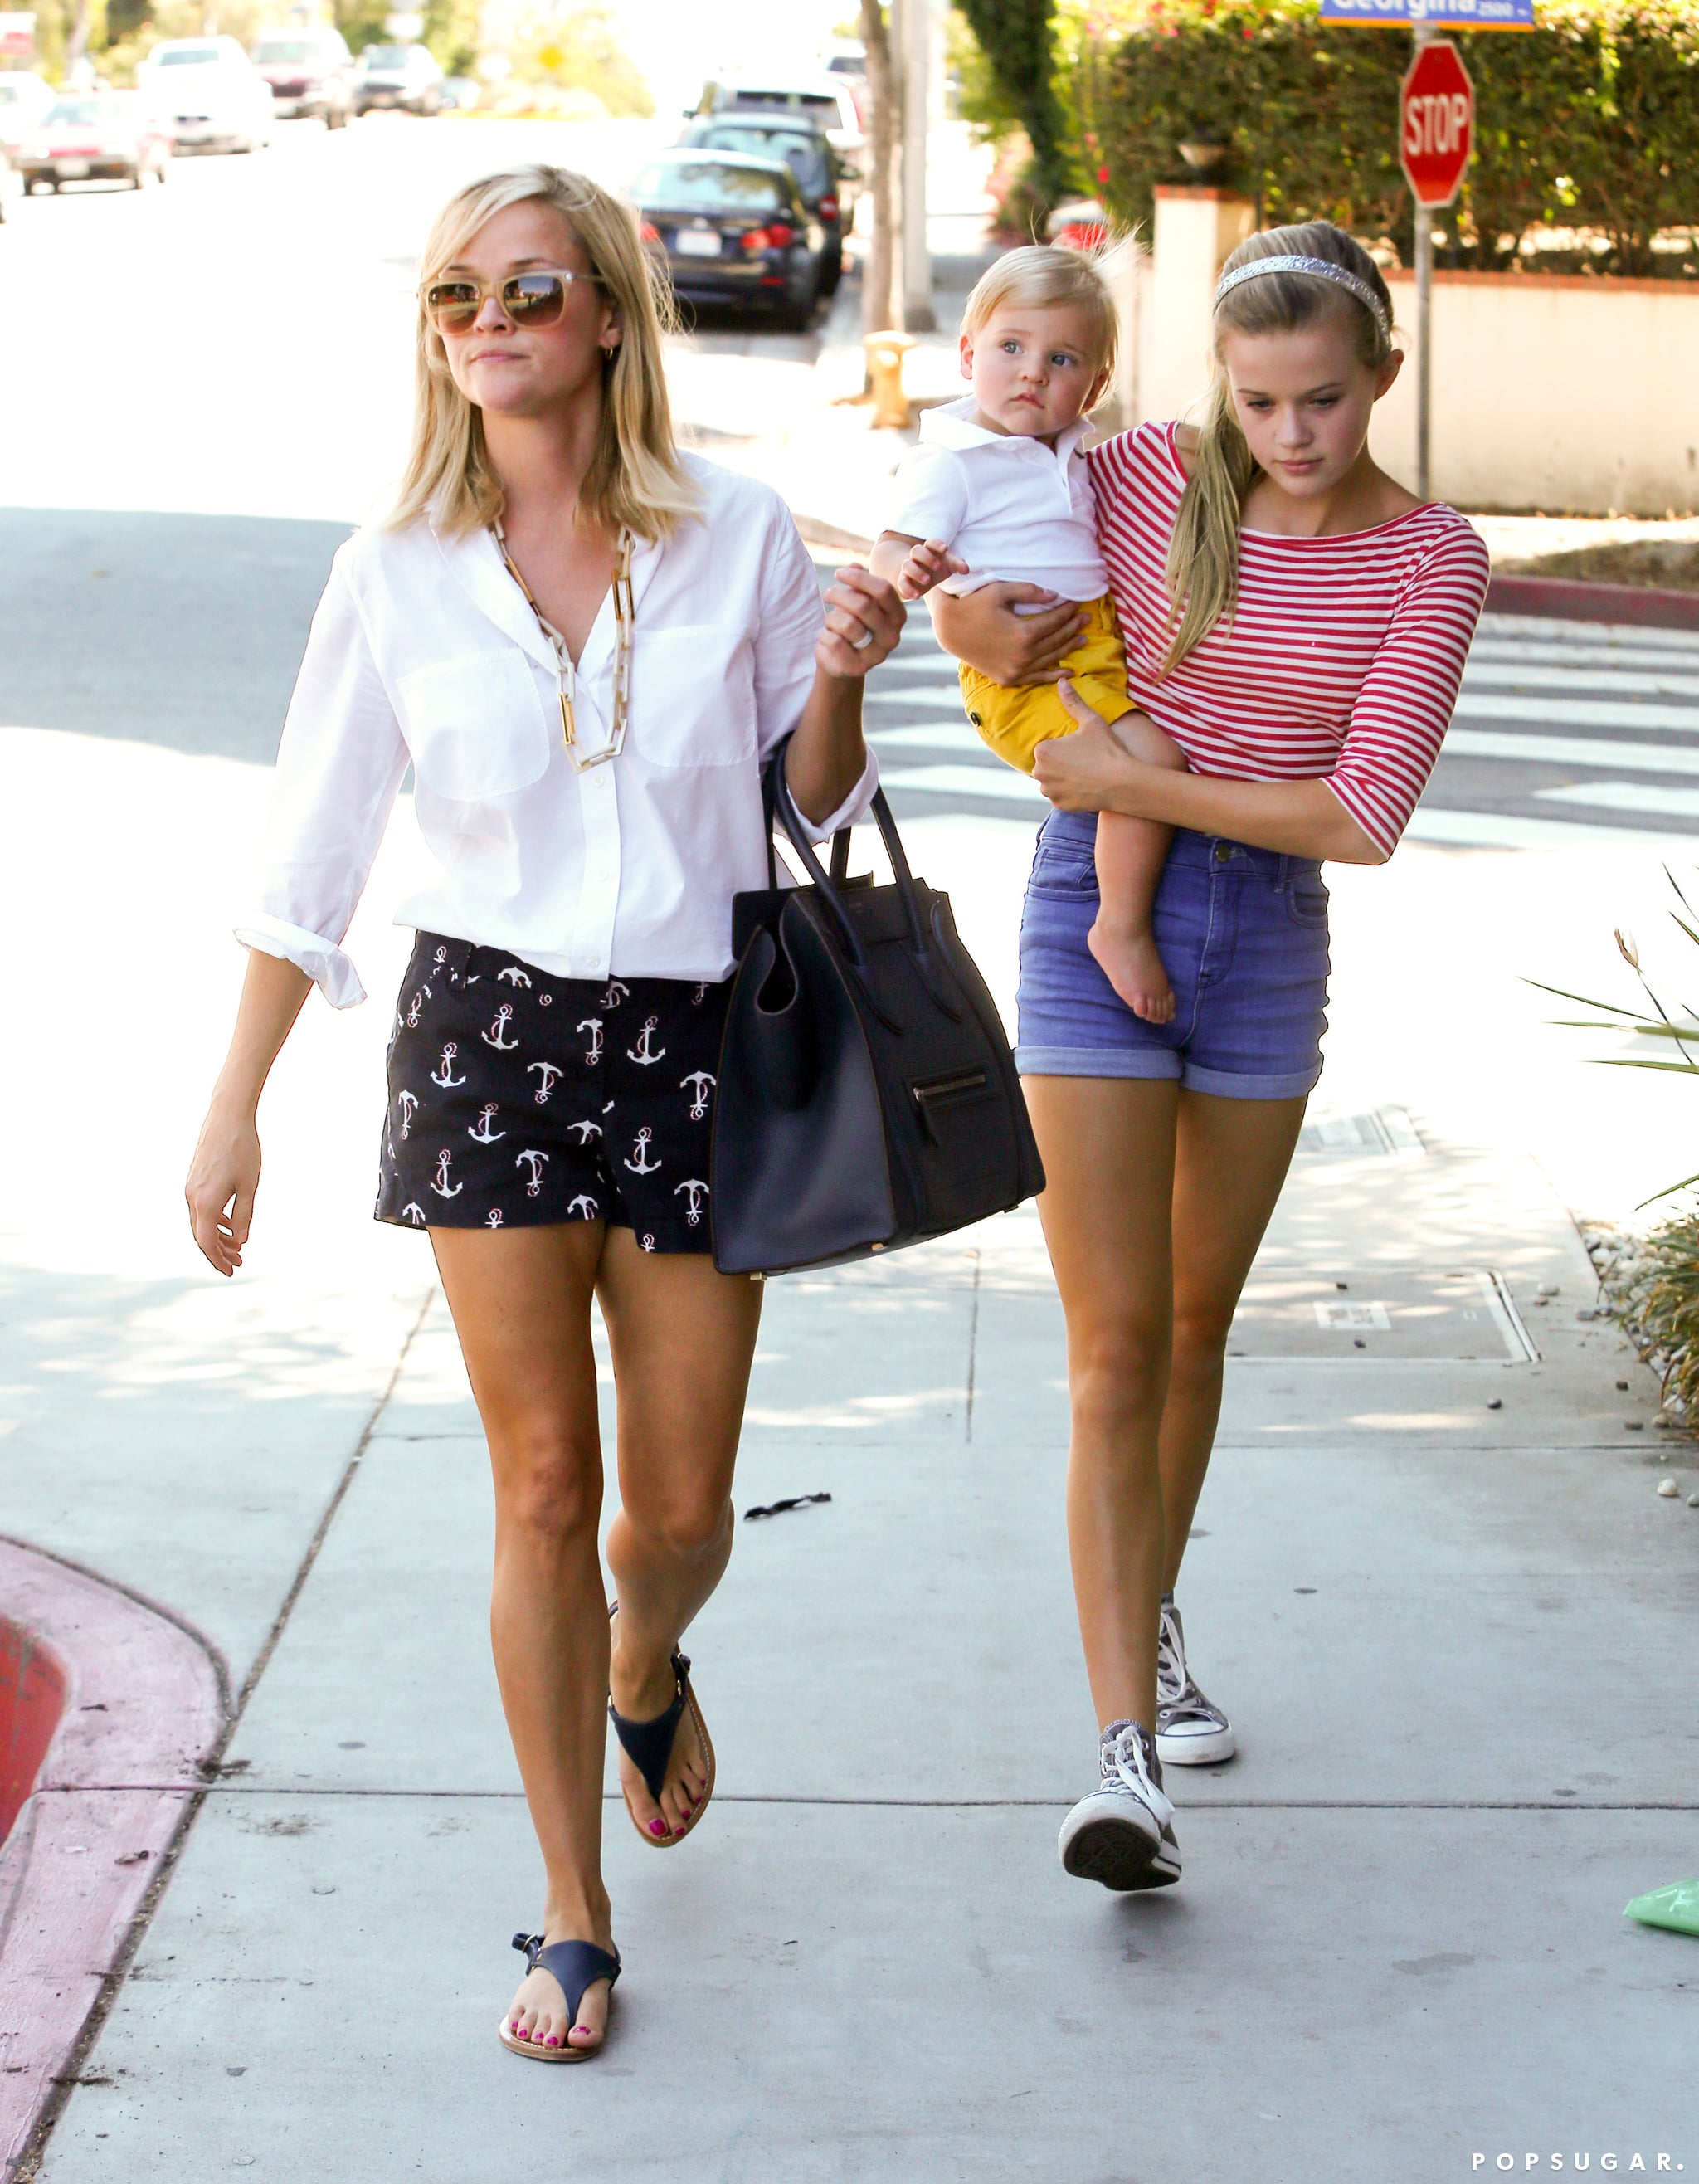 Reese Witherspoon walked with her kids Ava Phillippe and Tennessee Toth in LA.